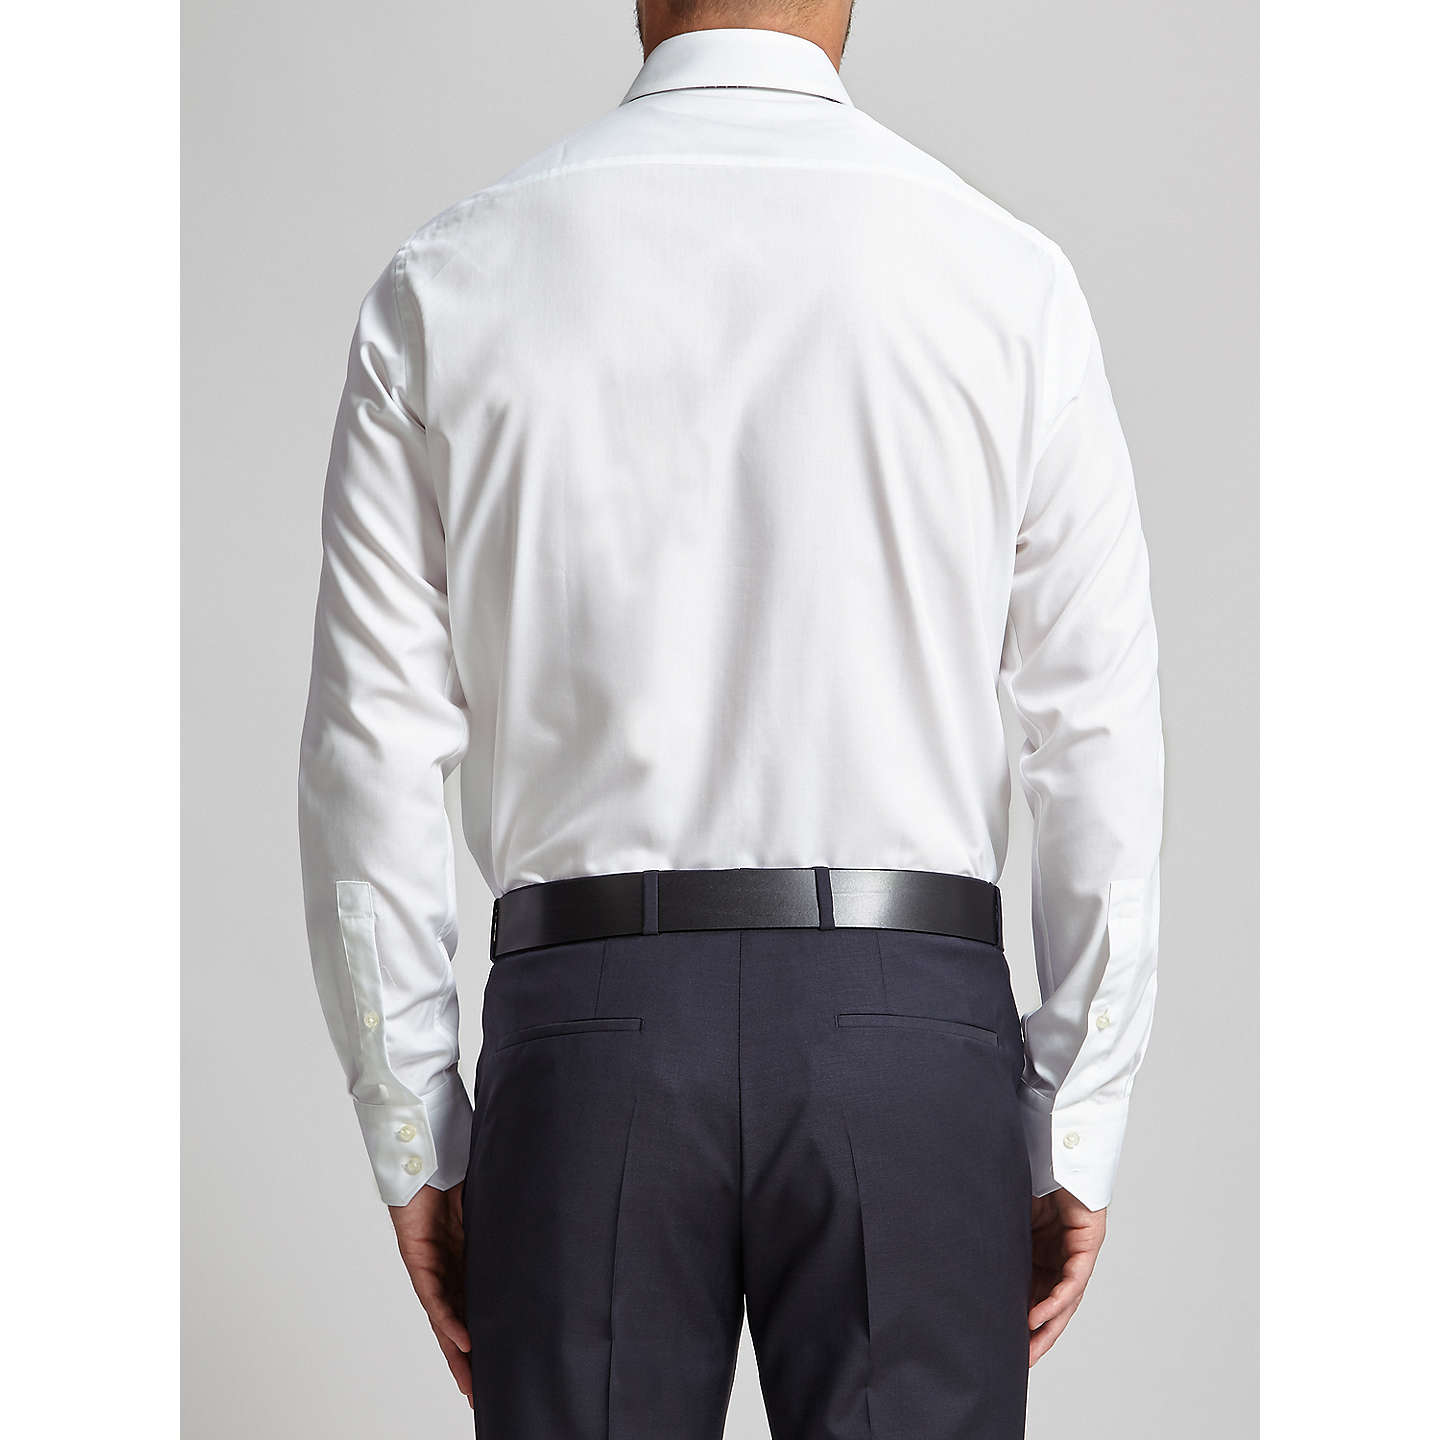 BuyHUGO Enzo Cotton Poplin Regular Fit Shirt, Open White, 15 Online at johnlewis.com